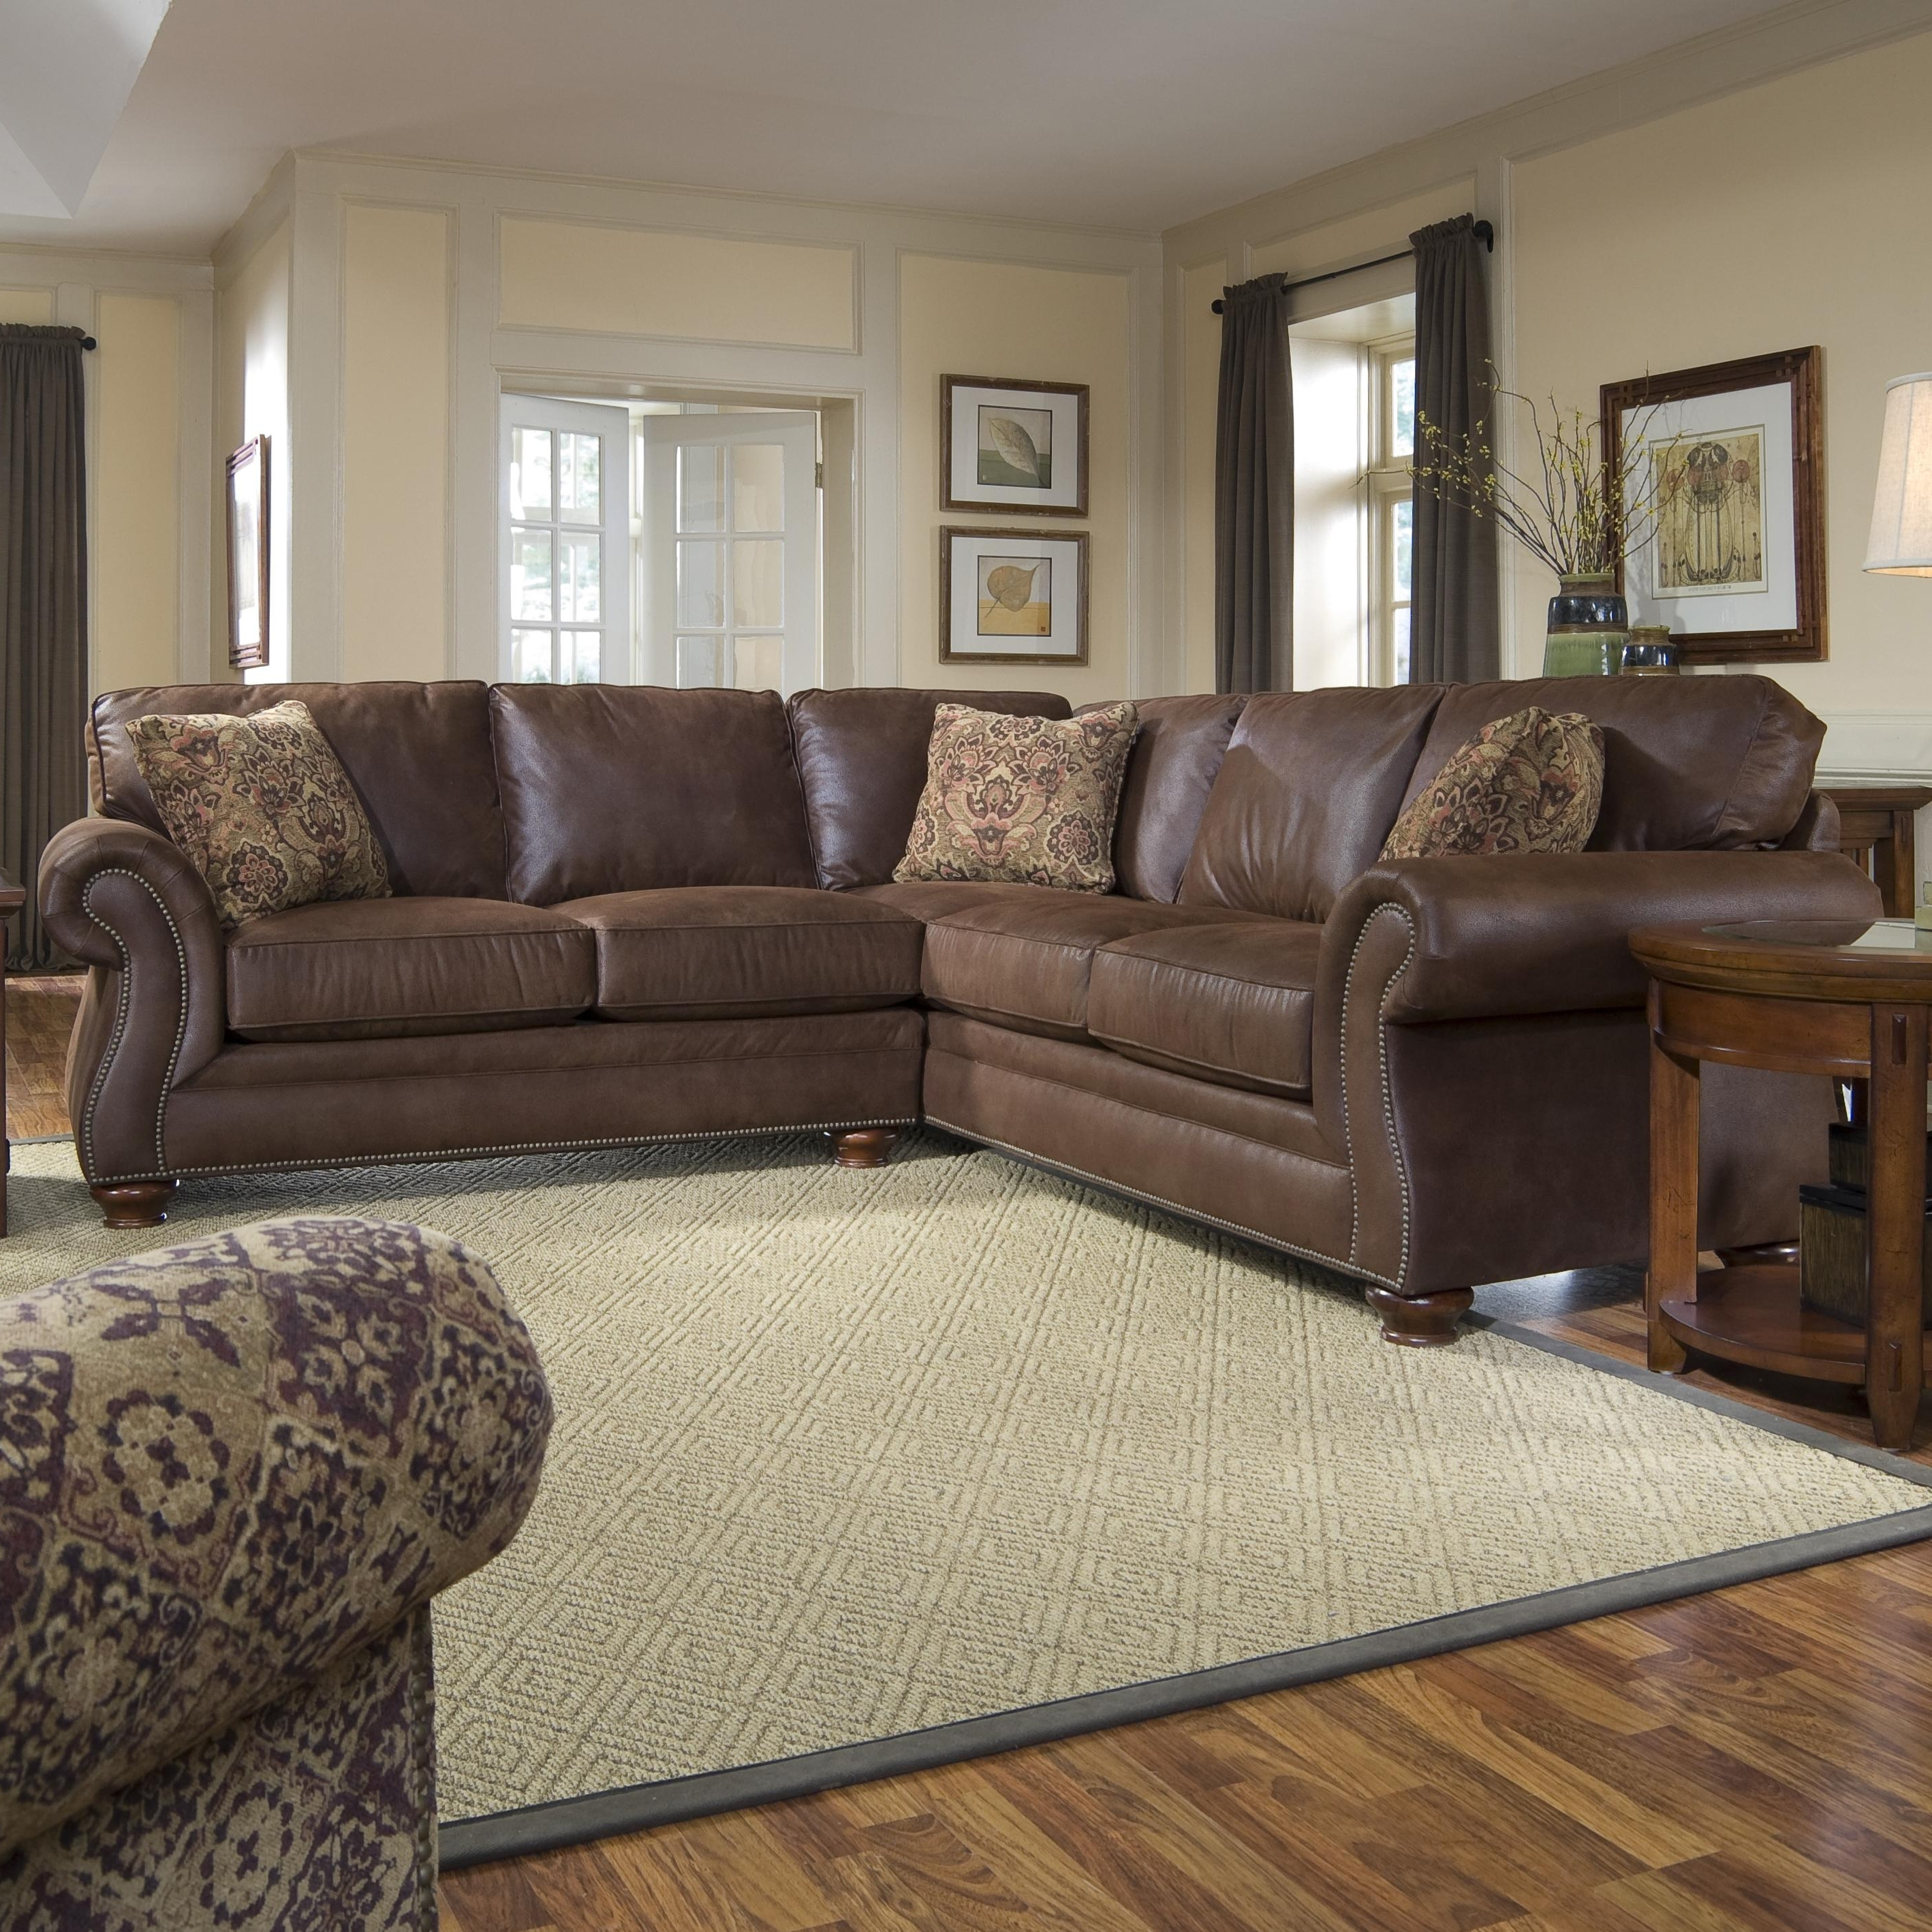 Popular Sectional Sofas At Broyhill With Broyhill Furniture Laramie 3 Piece Sectional Sofa (View 7 of 15)